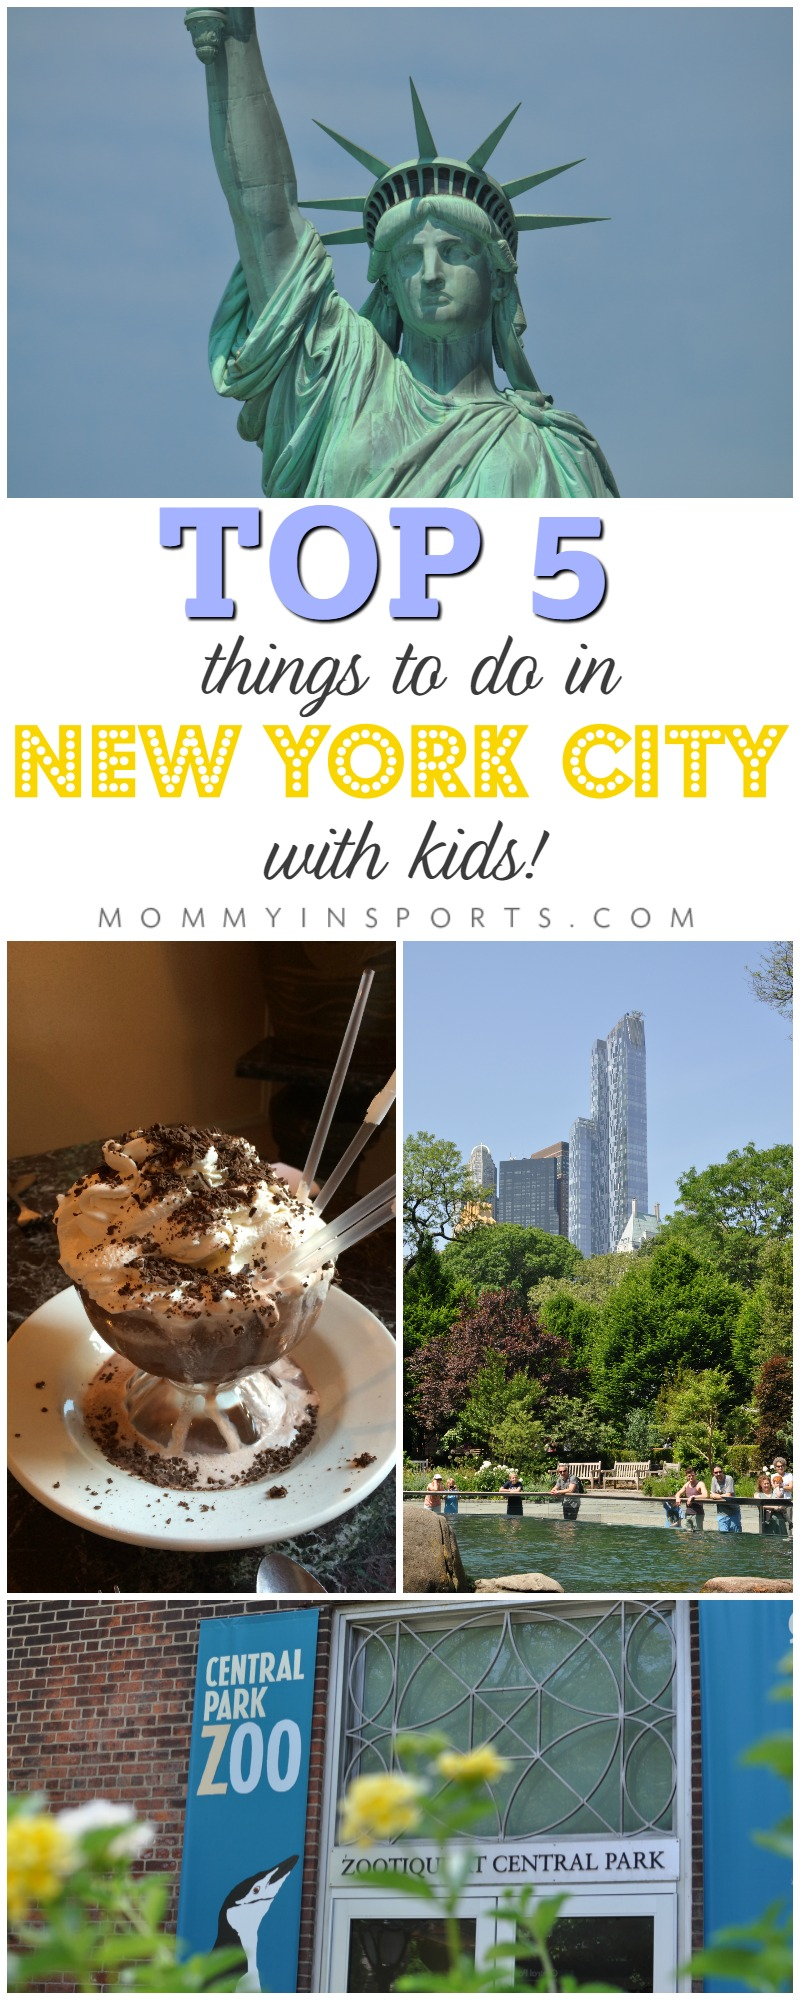 Top 5 things to do in new york city with kids kristen hewitt for Best places to visit in nyc with kids